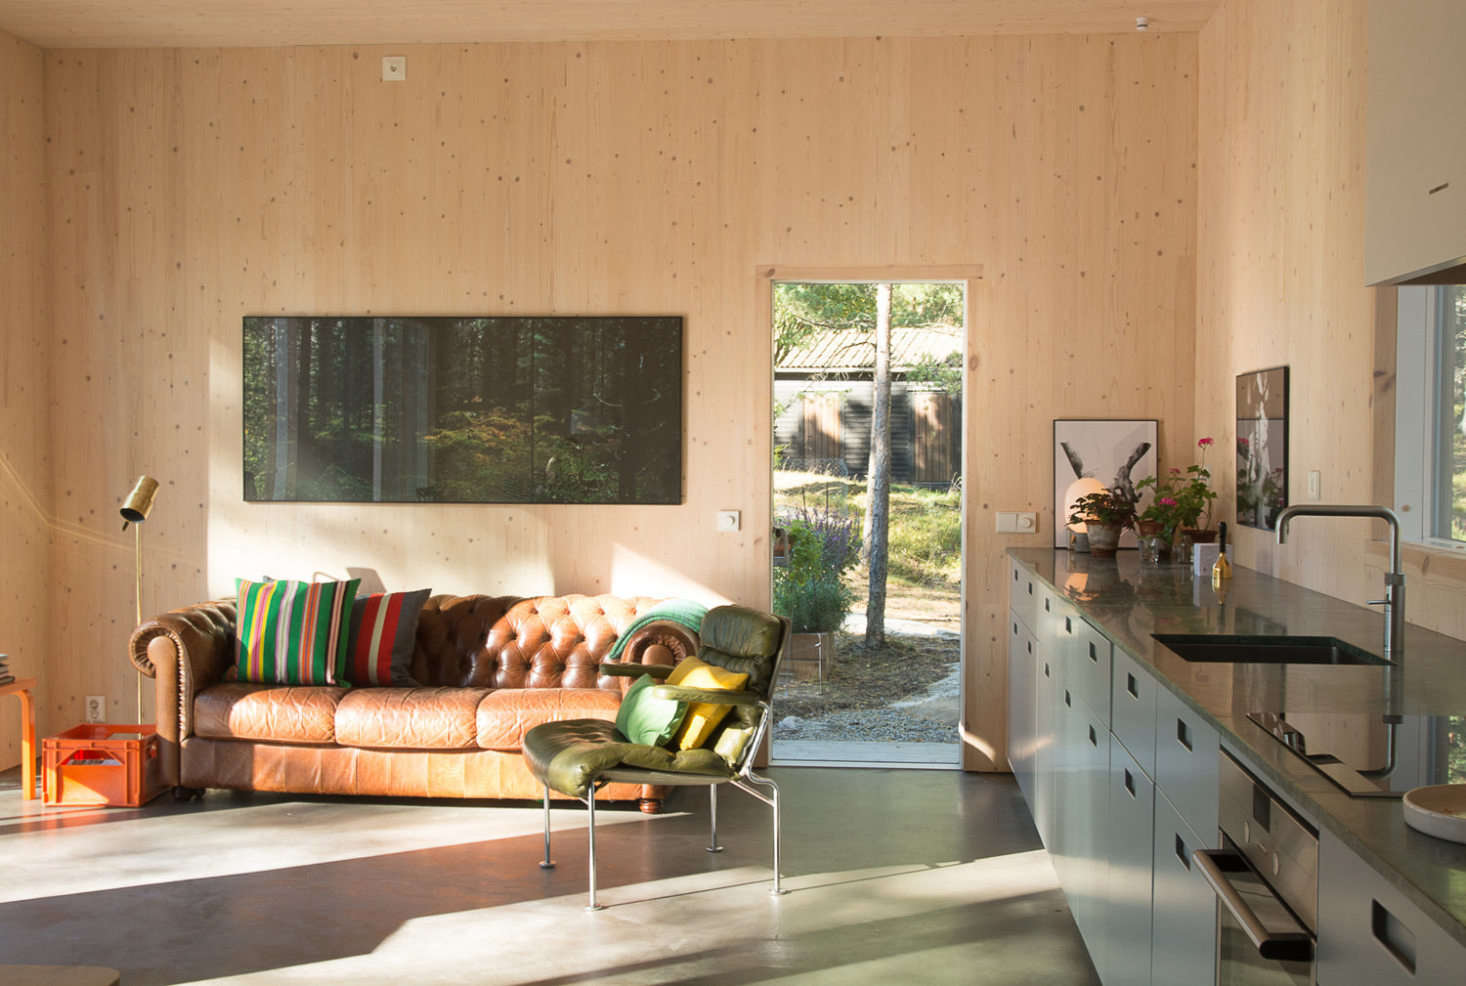 Sweden Houses Design Leva Husfabrik Flat Pack Prefab Summerhouses From Sweden